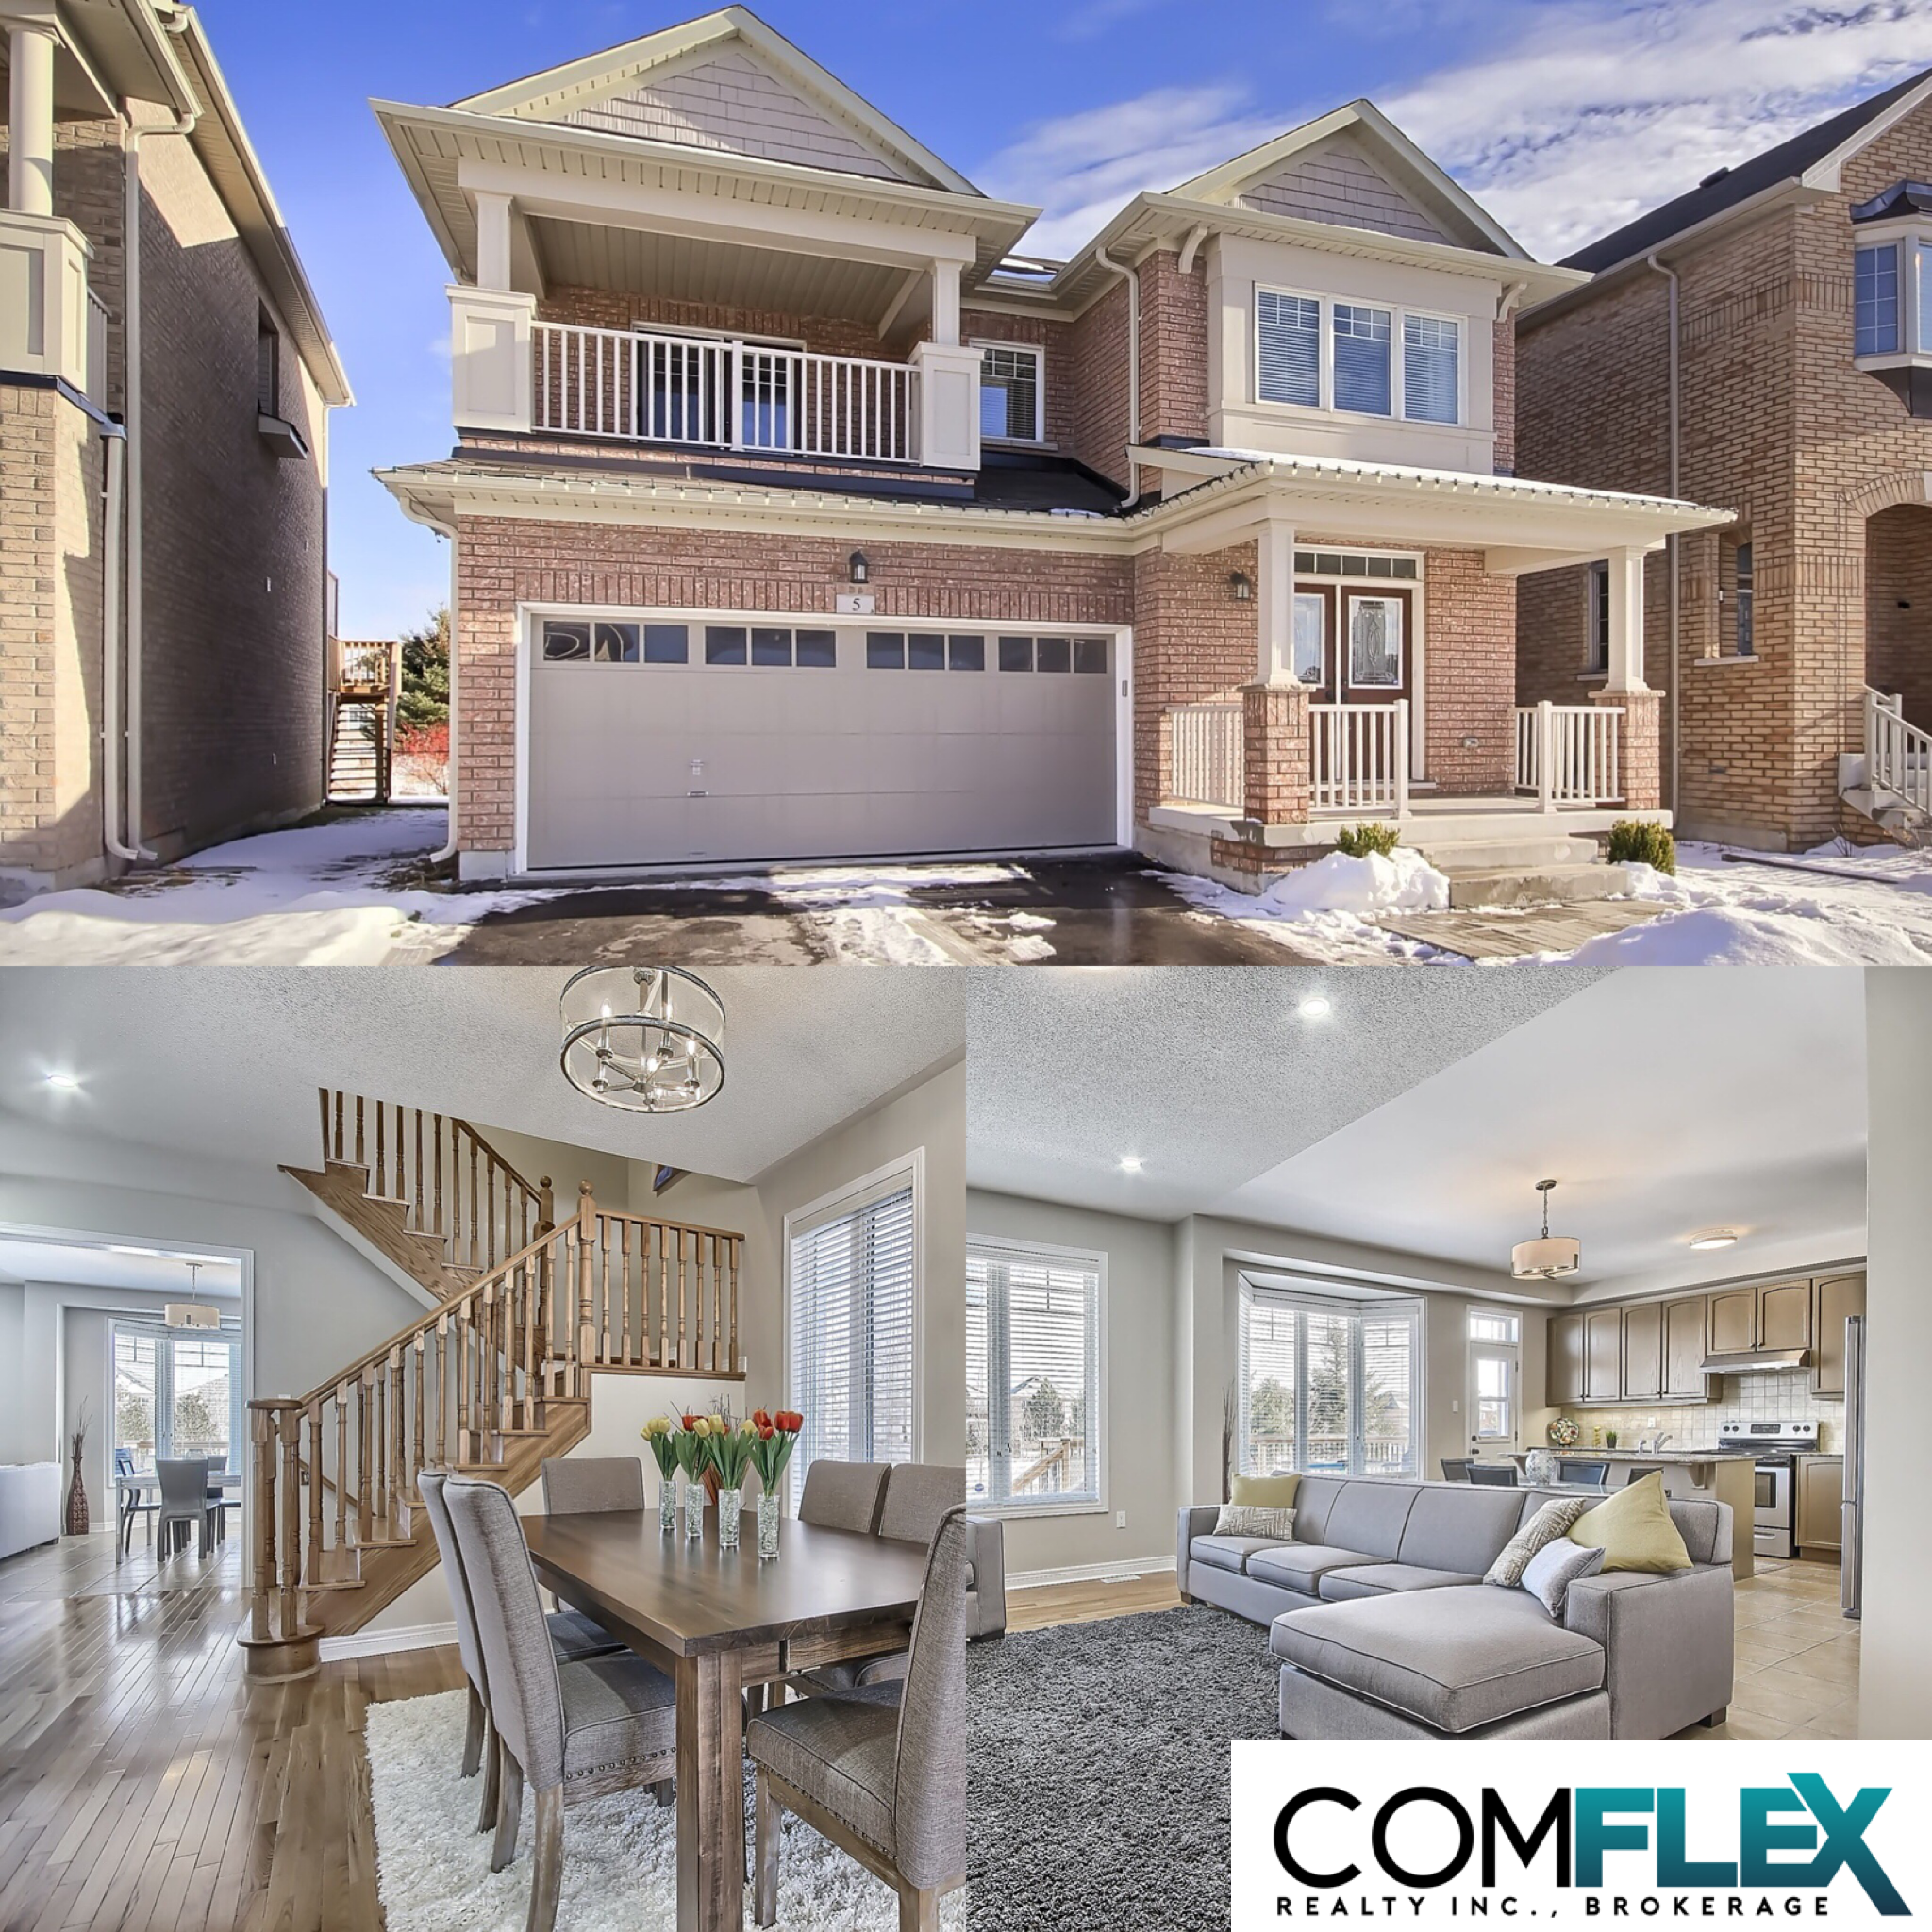 JUST LISTED! 5 JOCADA COURT, RICHMOND HILL THESE CLIENTS ARE READY TO SAVE MORE!